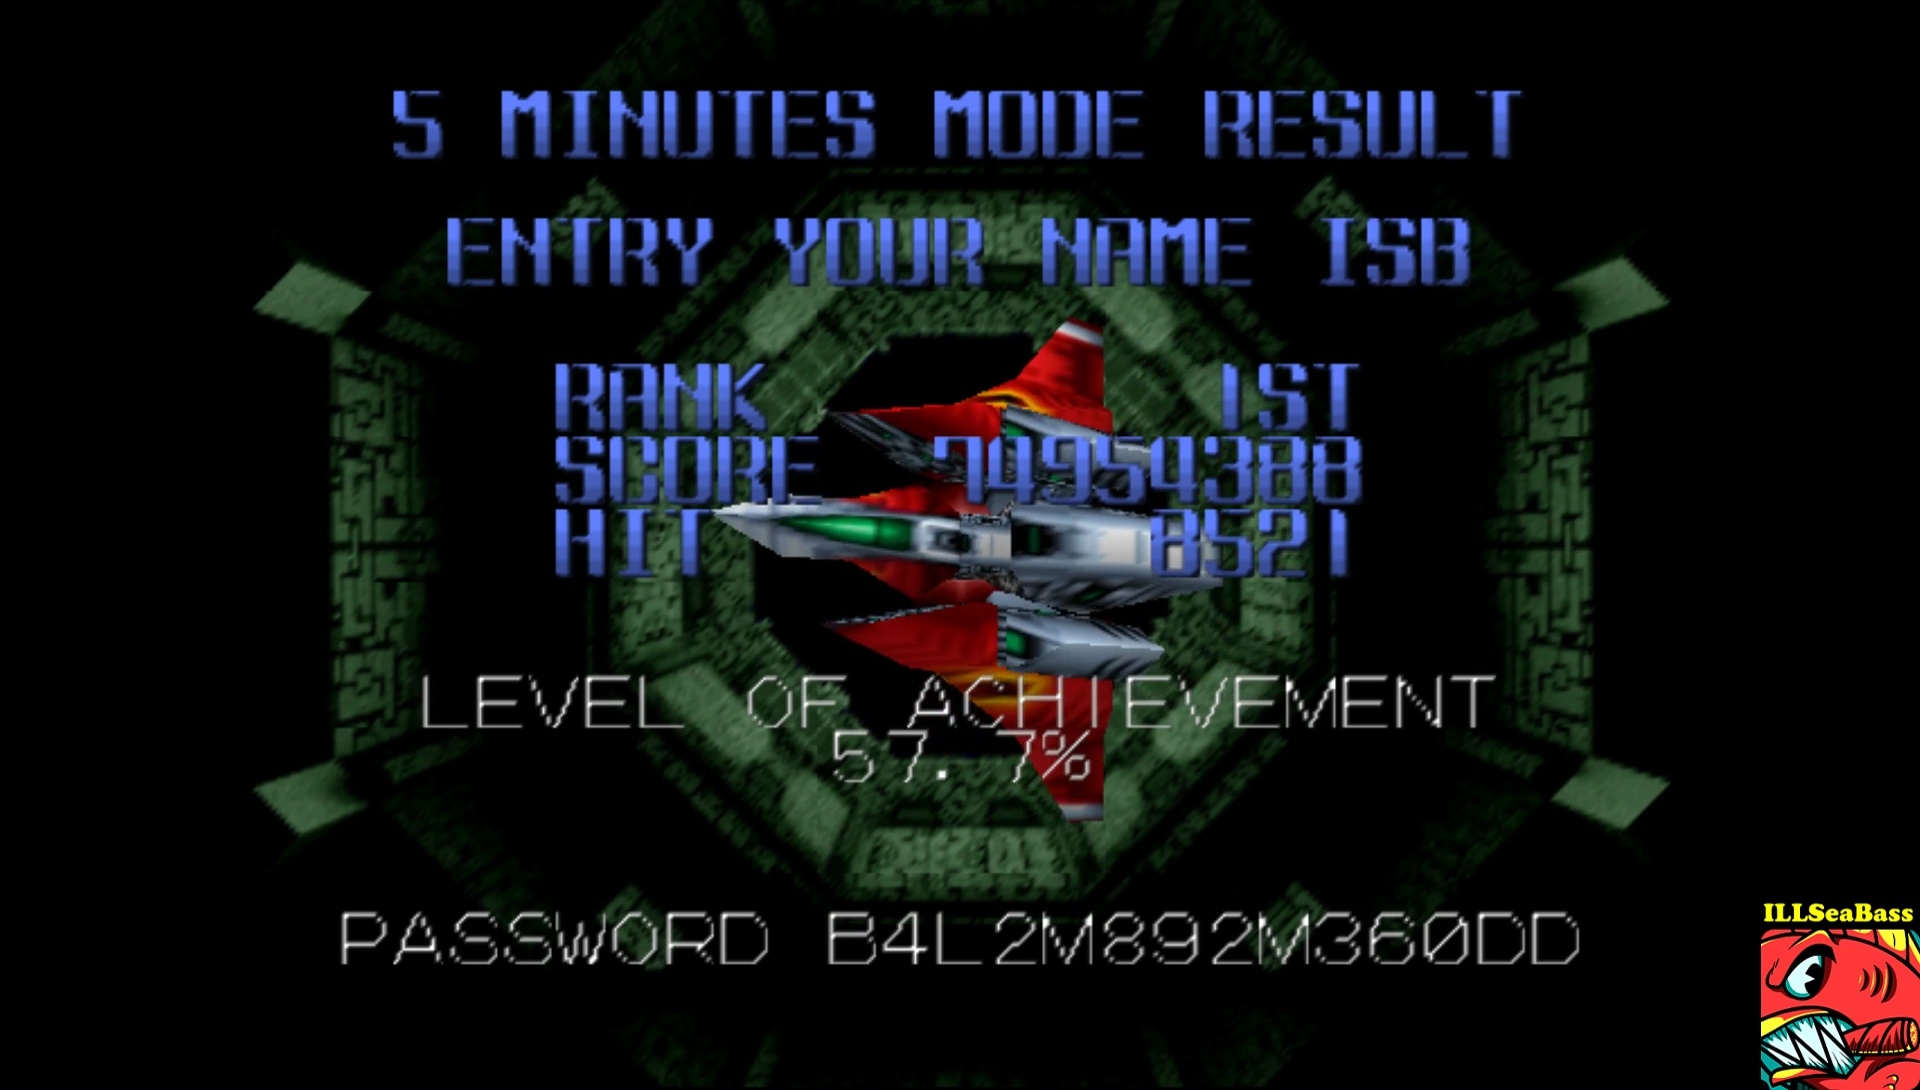 ILLSeaBass: Star Soldier Vanishing Earth: 5 Minutes Mode [Master] (N64 Emulated) 74,954,388 points on 2017-02-10 23:59:40